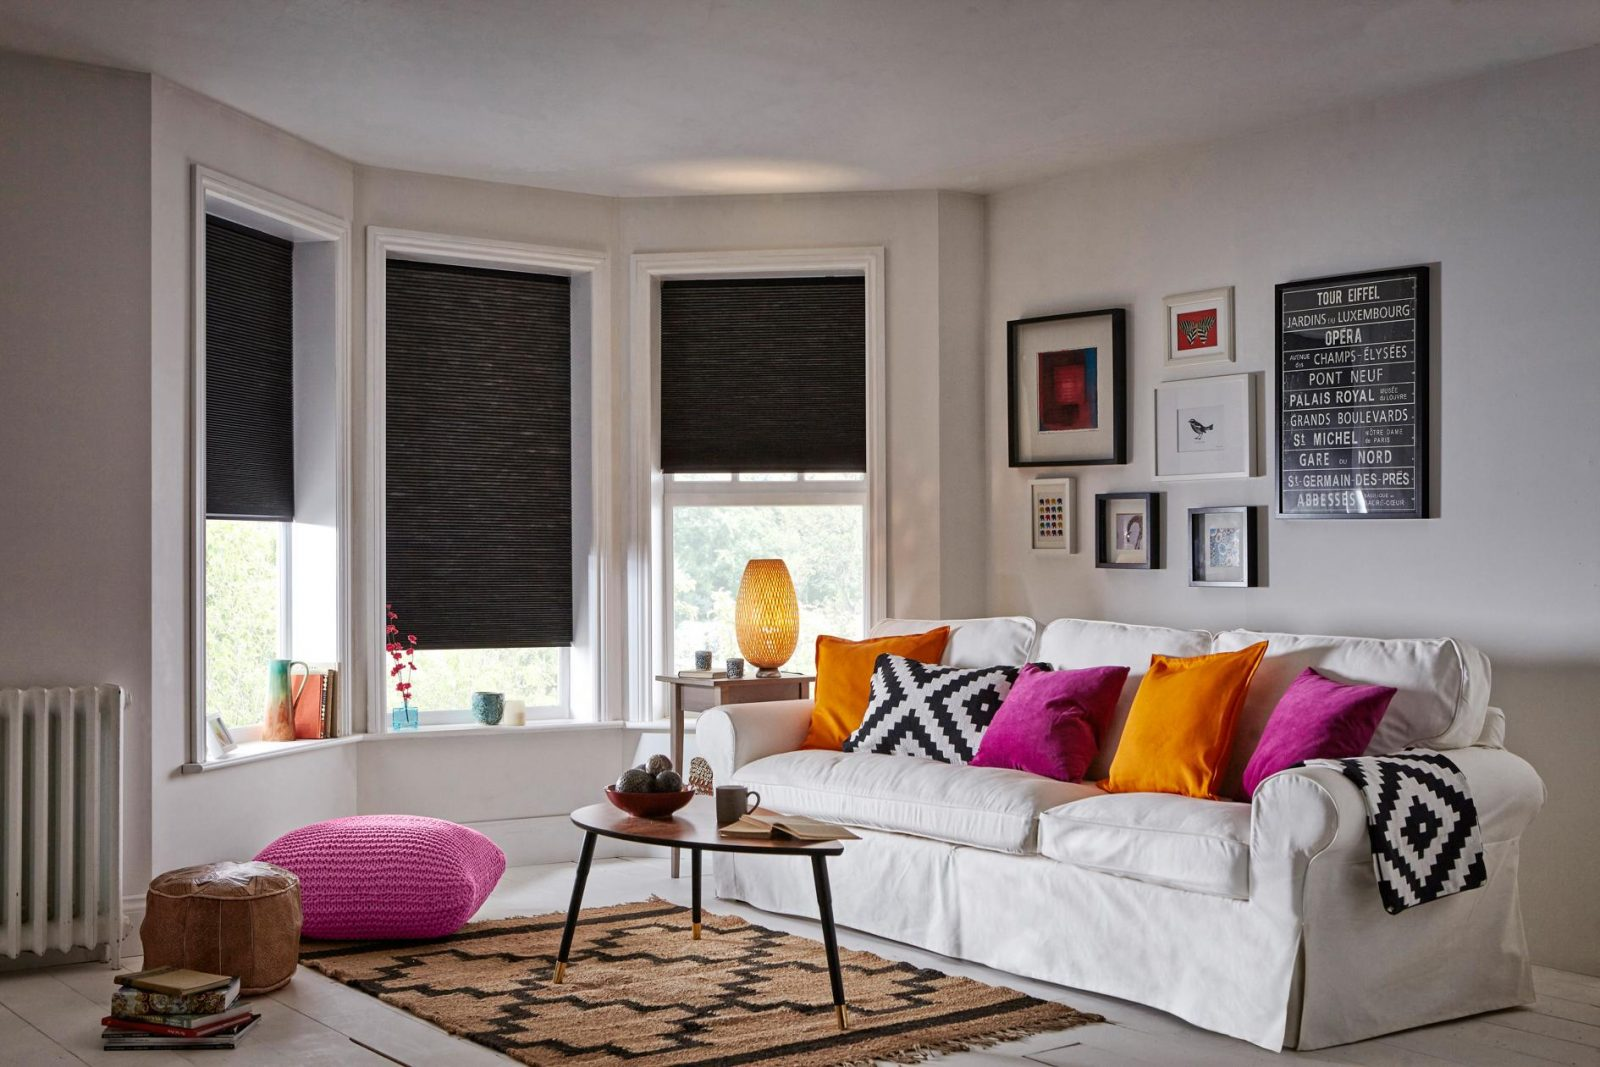 Blackout Blinds Grimsby Amp Cleethorpes Humberside Sunblinds